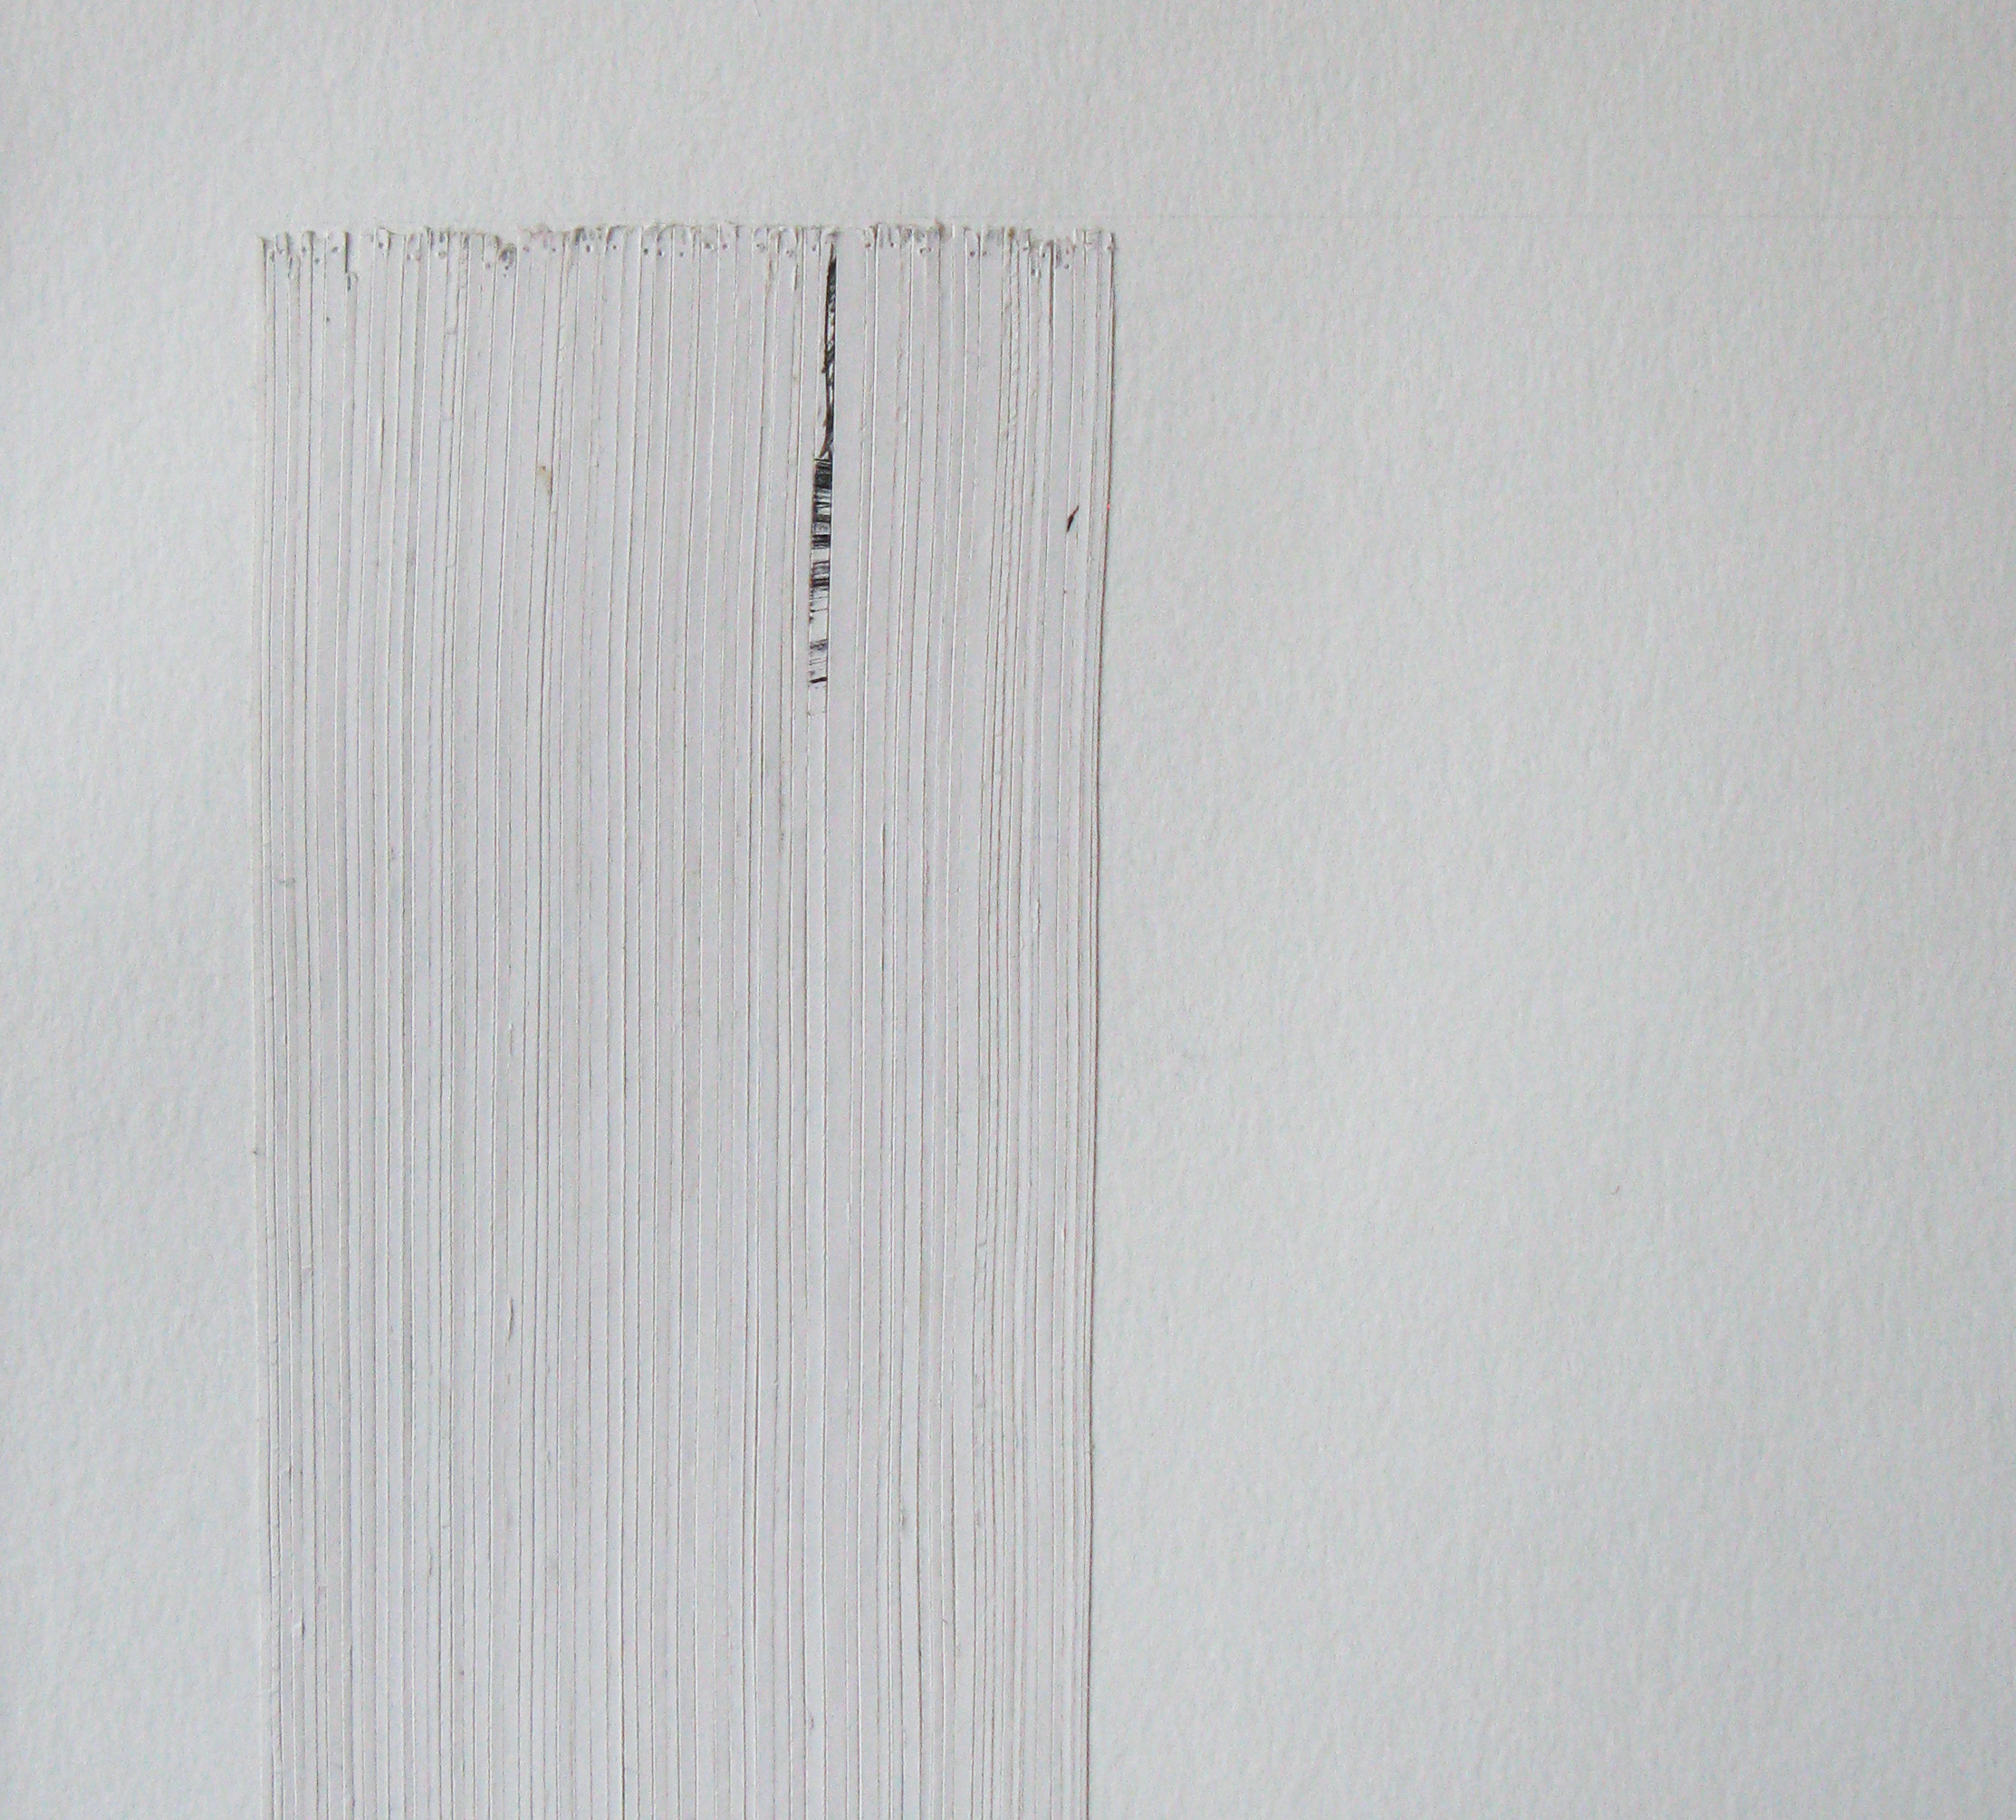 Untitled (leftovers IV),  detail